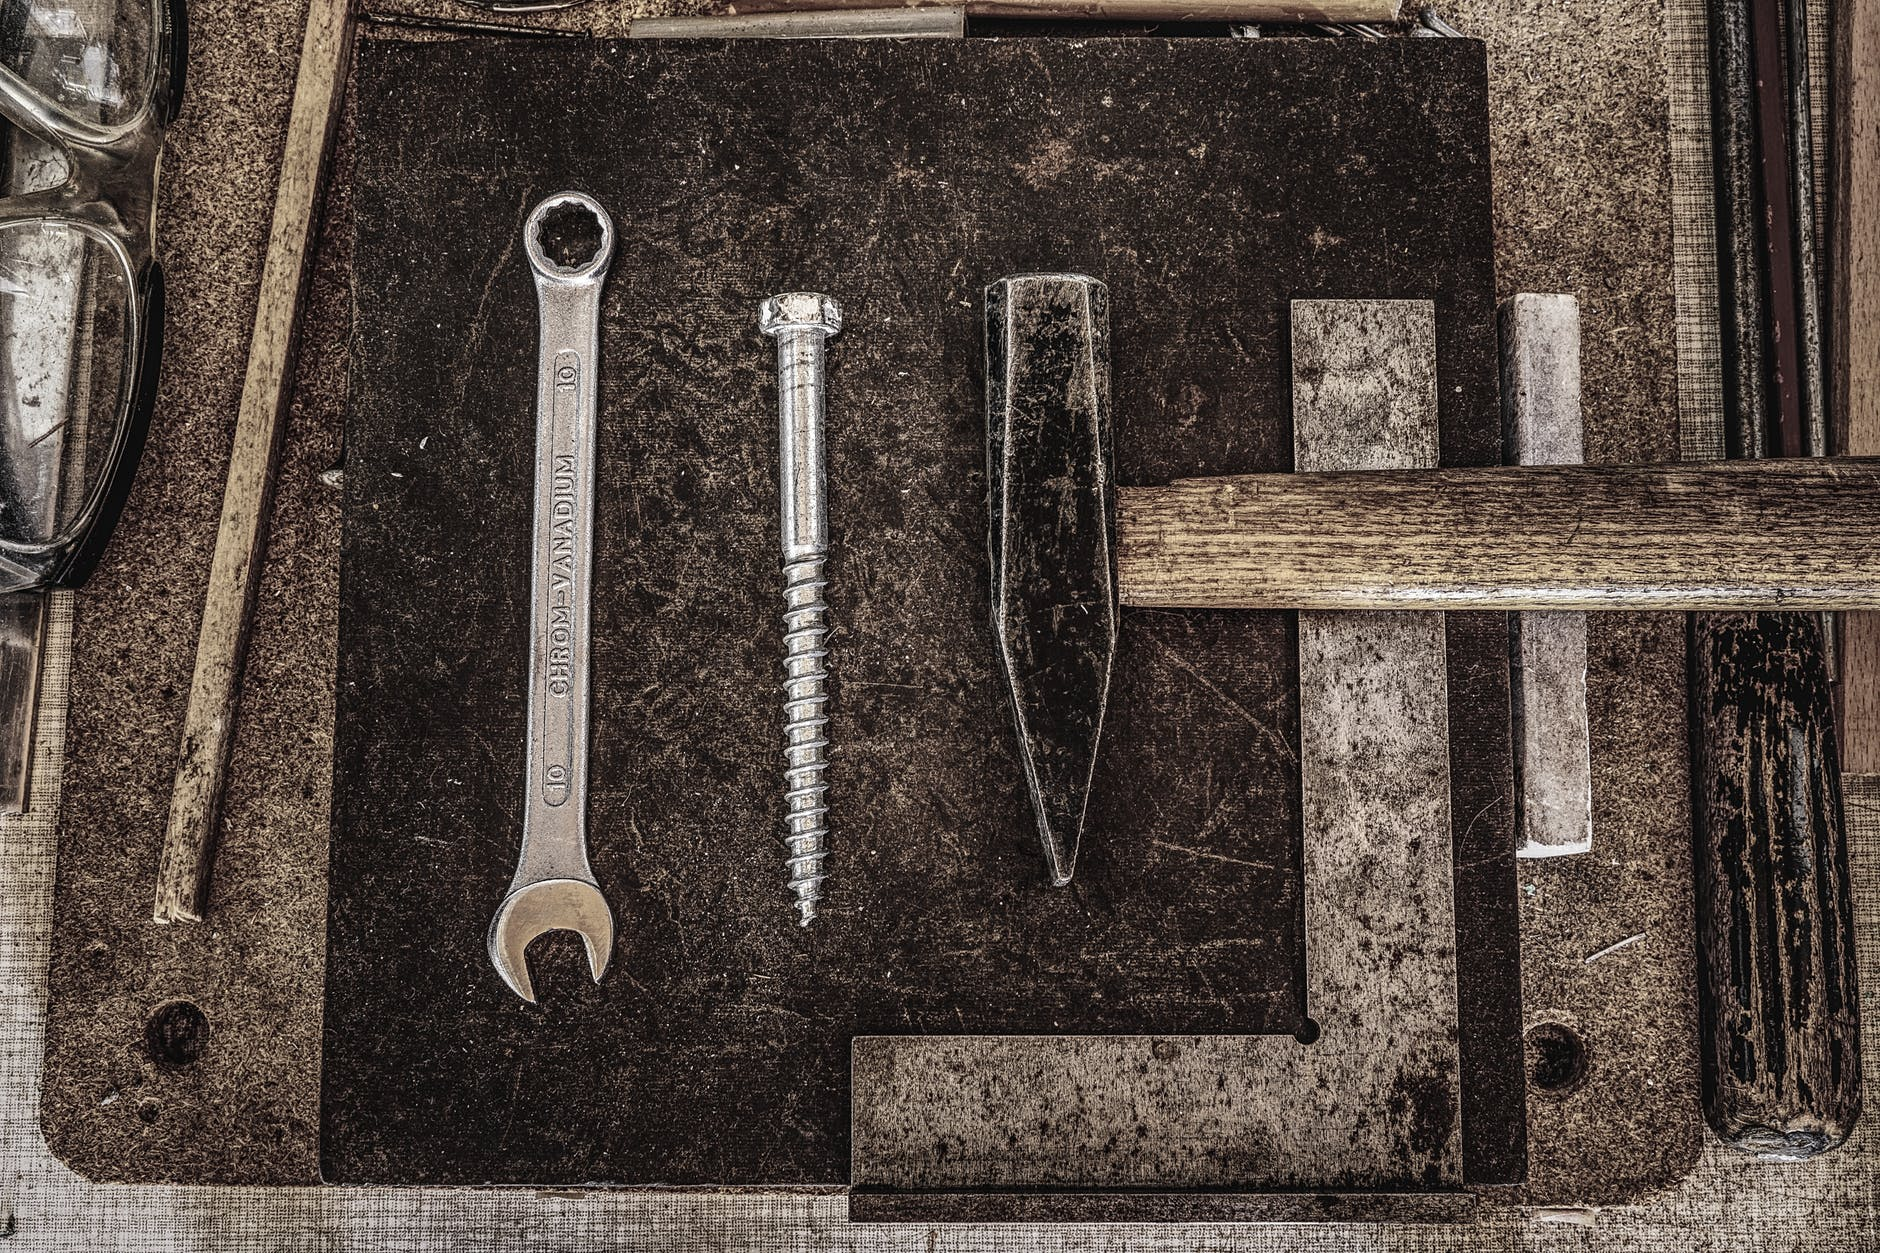 combination wrench screw bolt and pointed top hammer